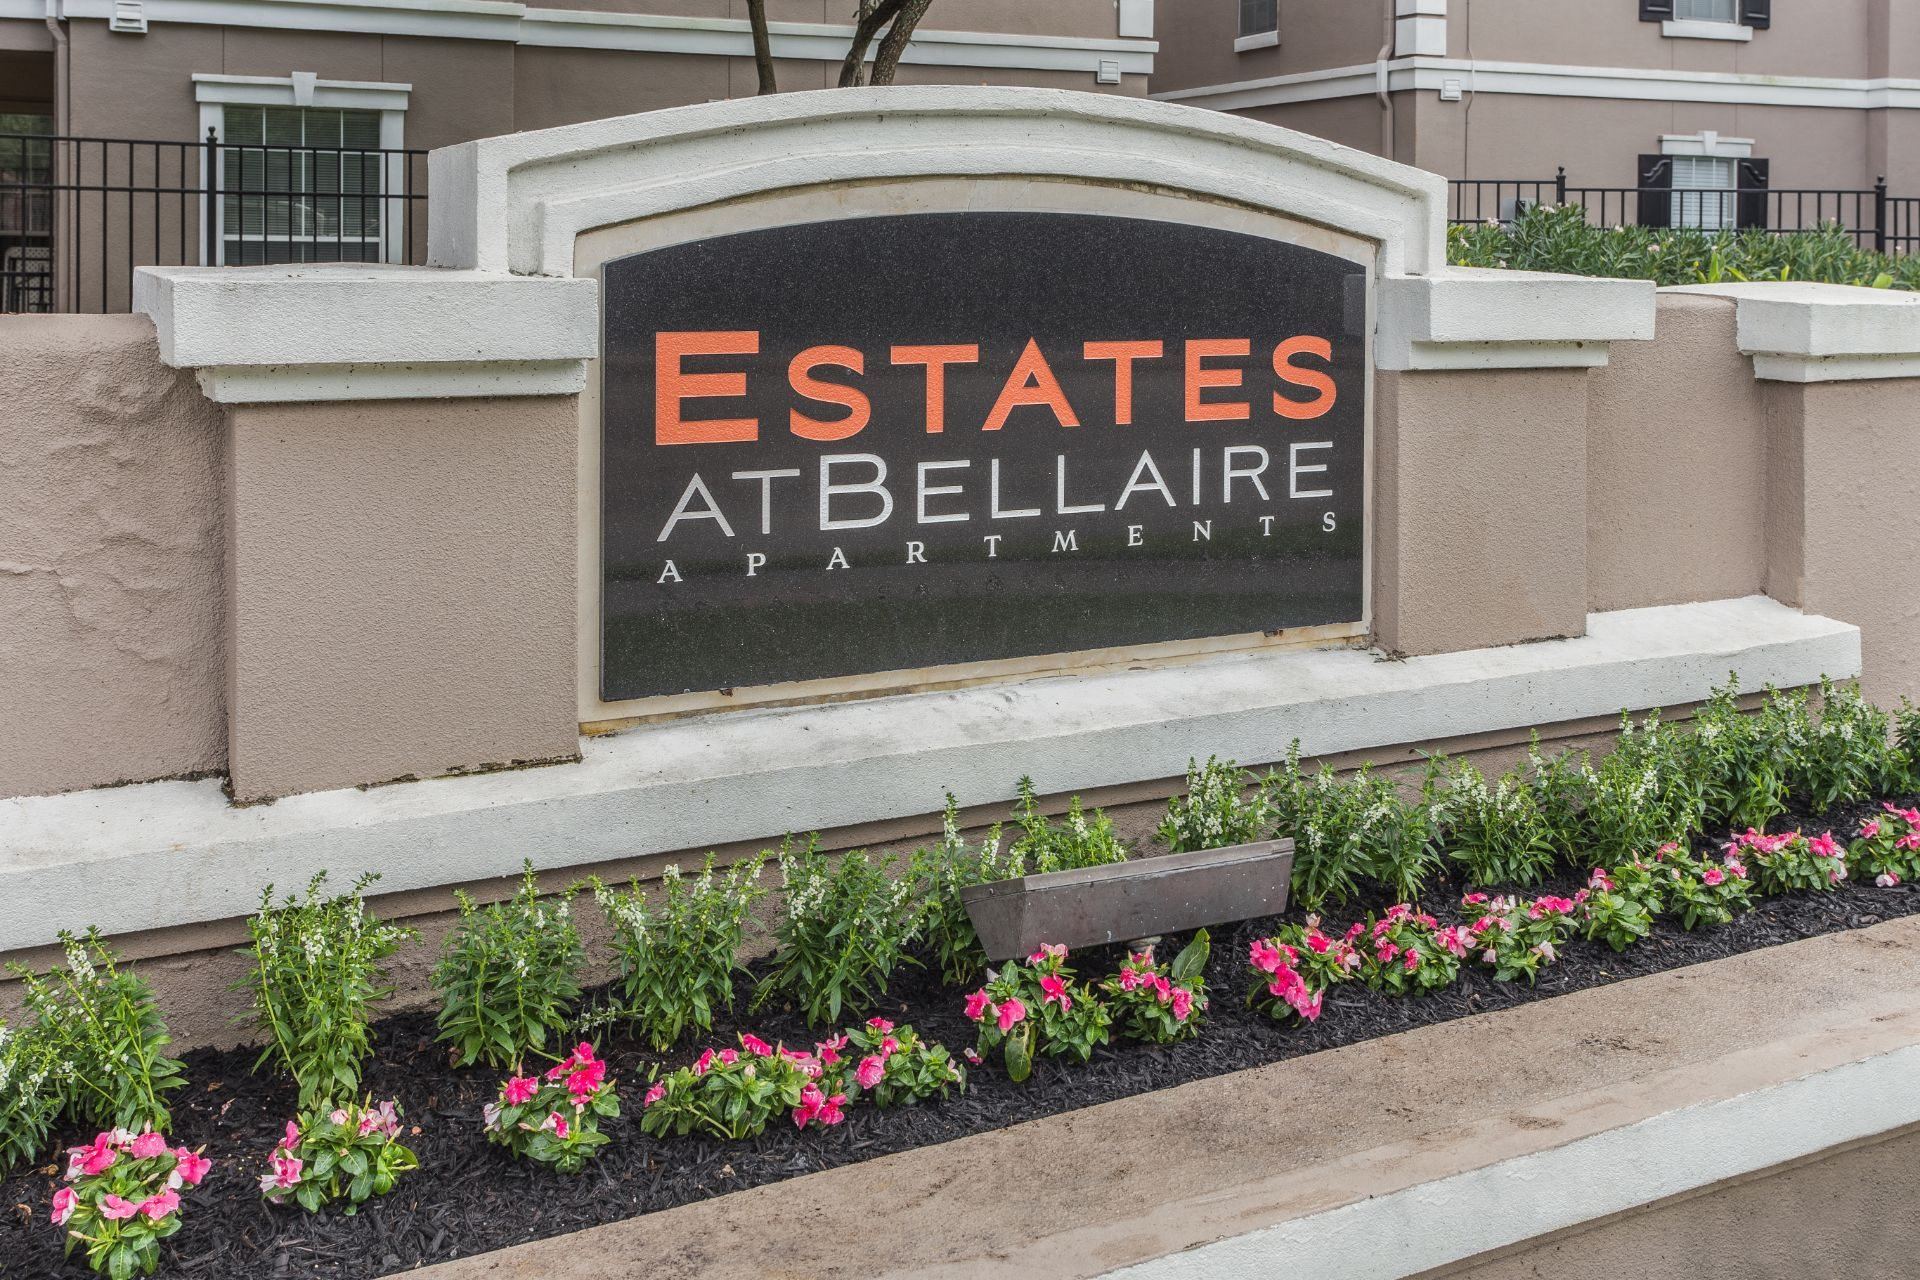 Property Sign at Estates at Bellaire, Houston, Texas